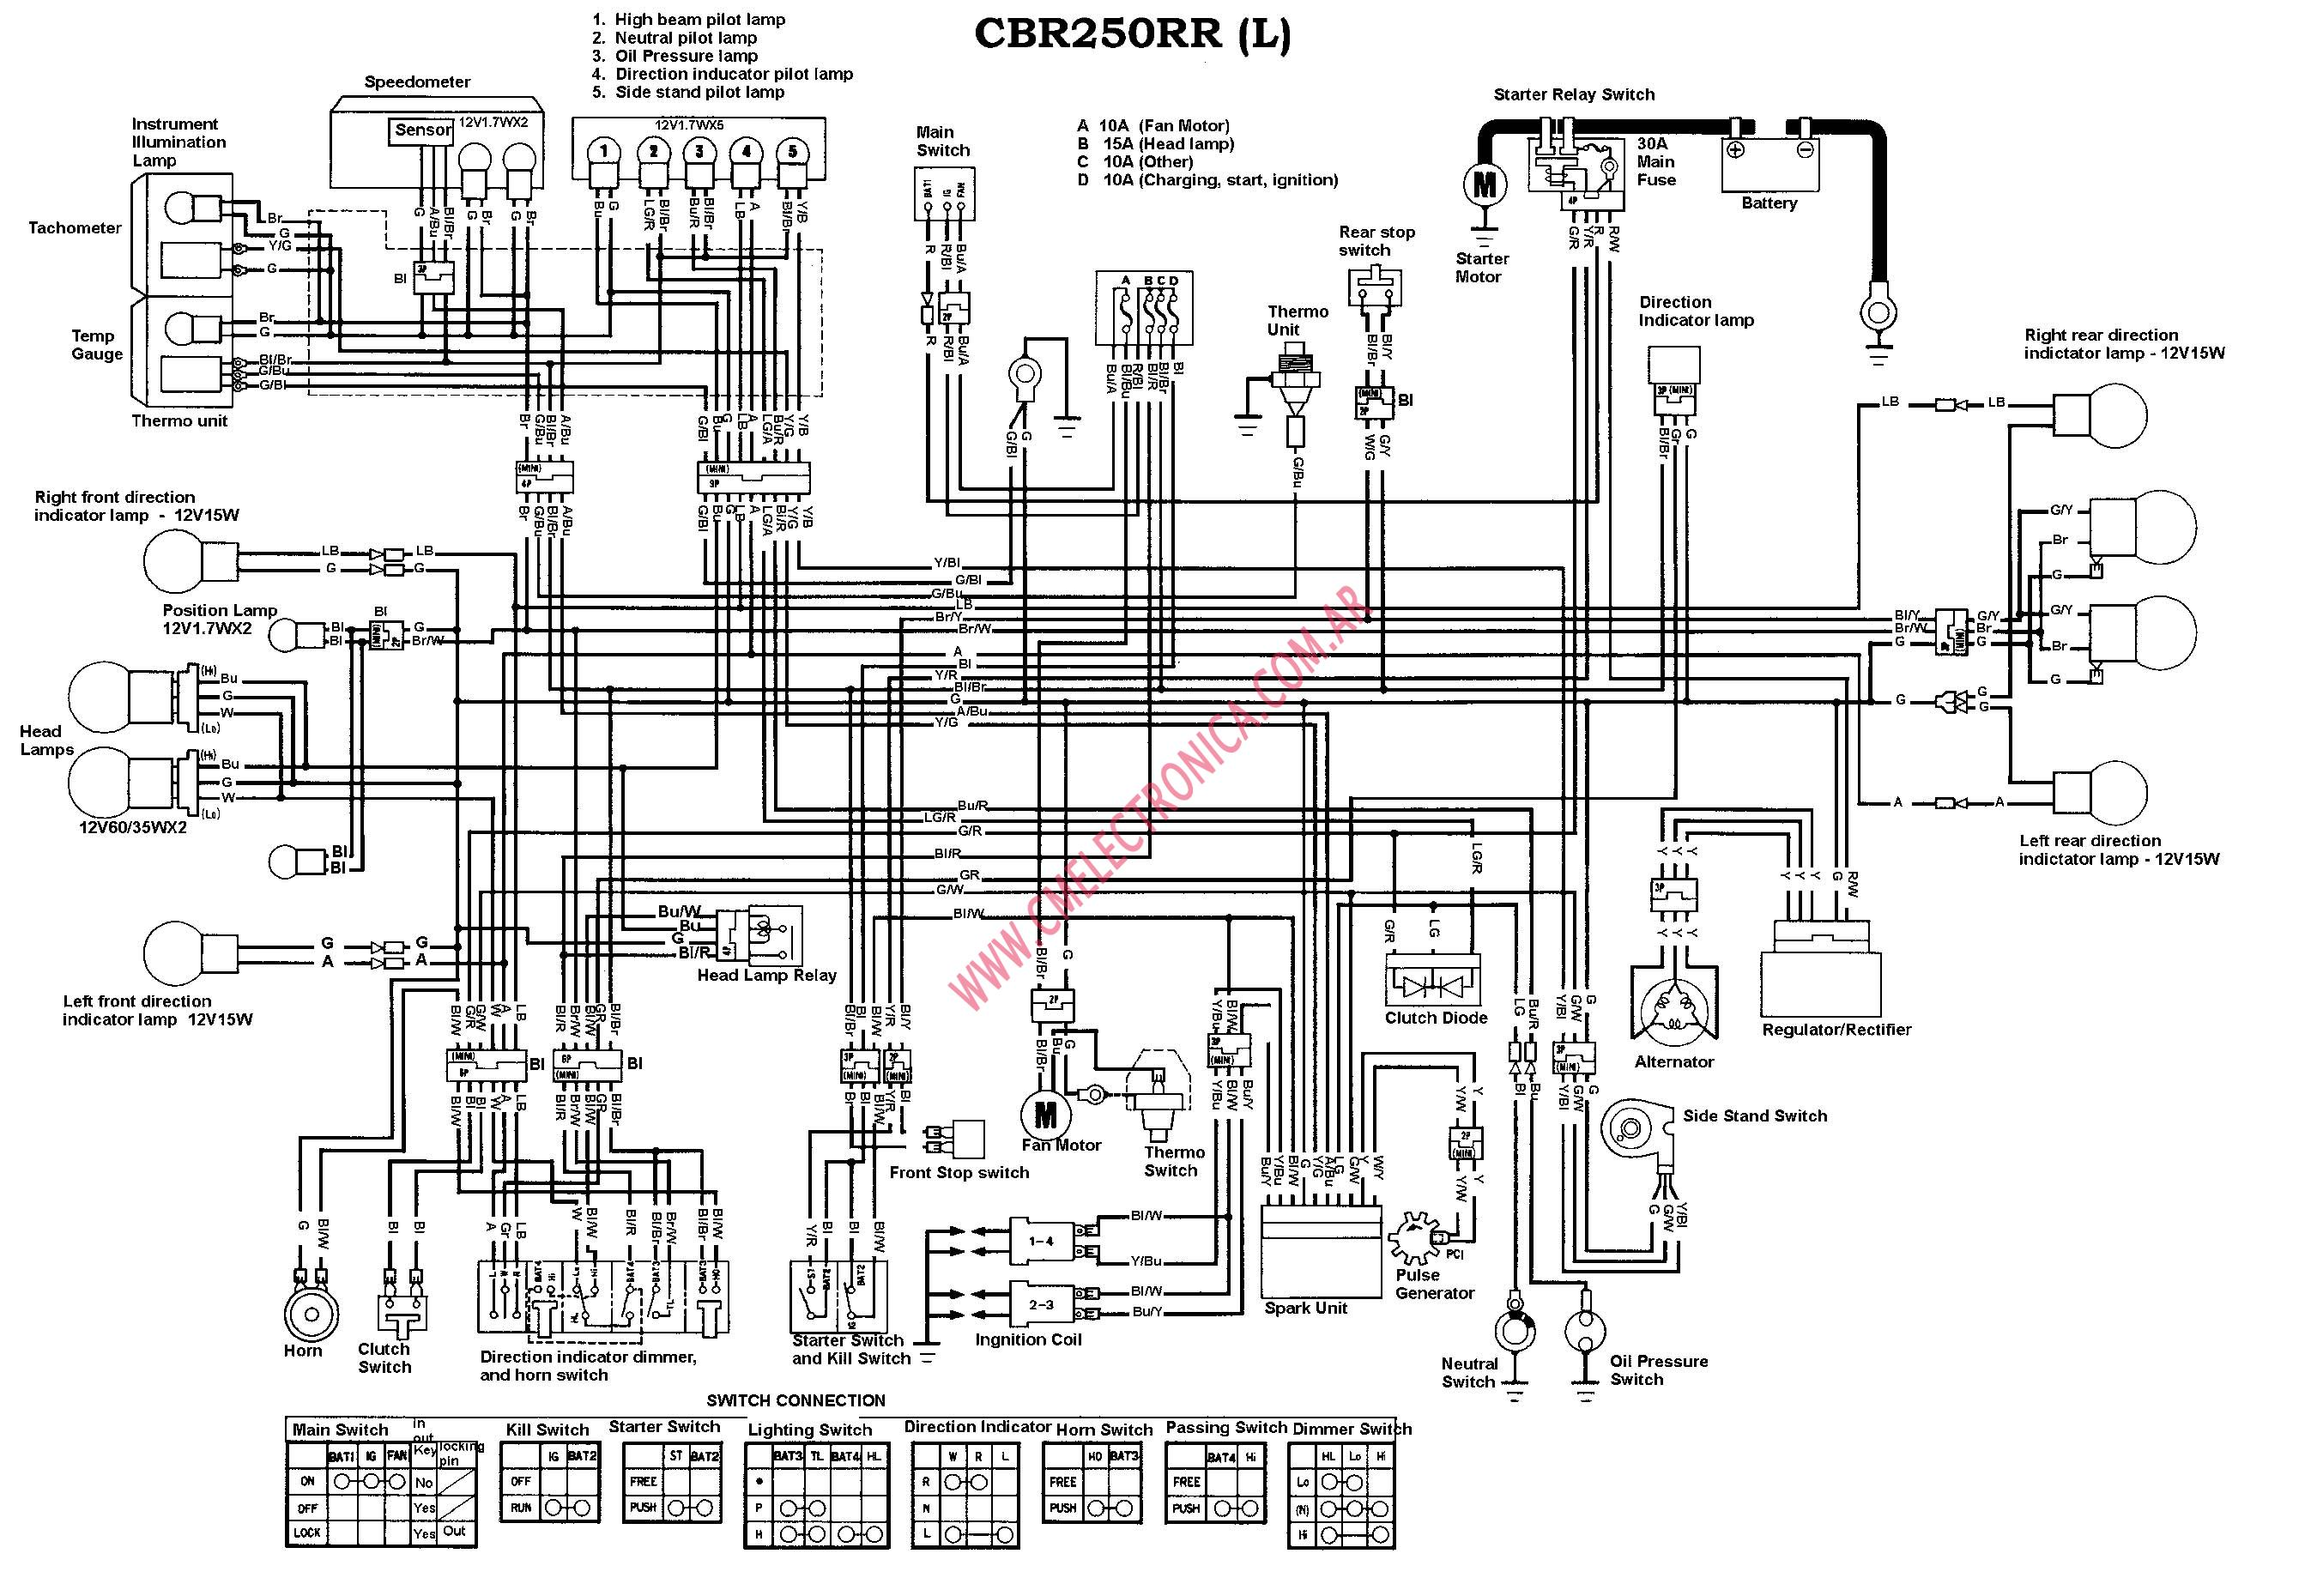 Diagram  Yamaha Bruin 350 Wire Diagram Full Version Hd Quality Wire Diagram